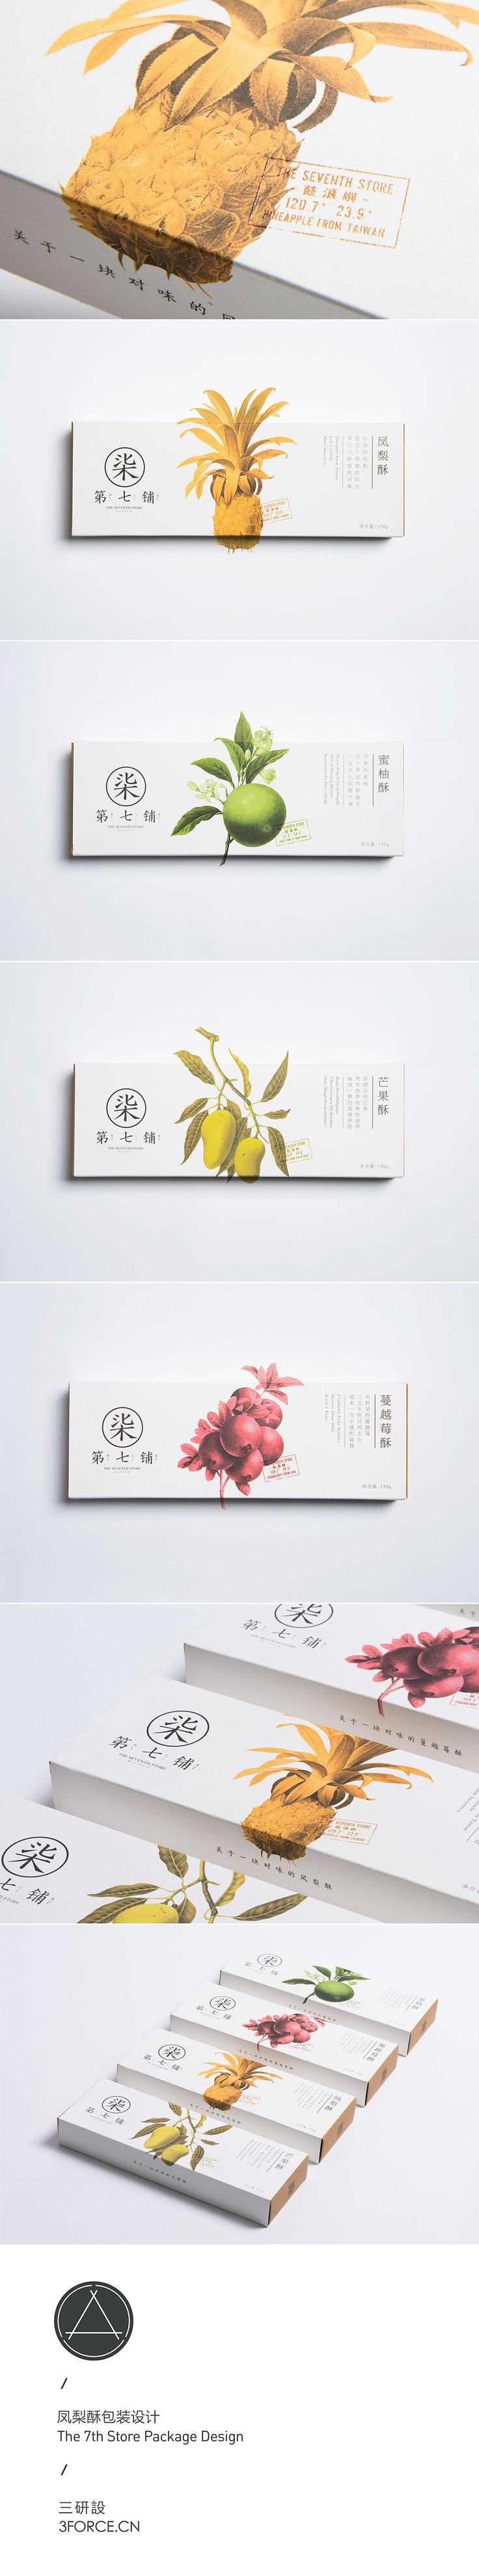 The 7th Store Pineapple Pie Packaging / 第七鋪鳳梨酥系列包裝設計 on Behance